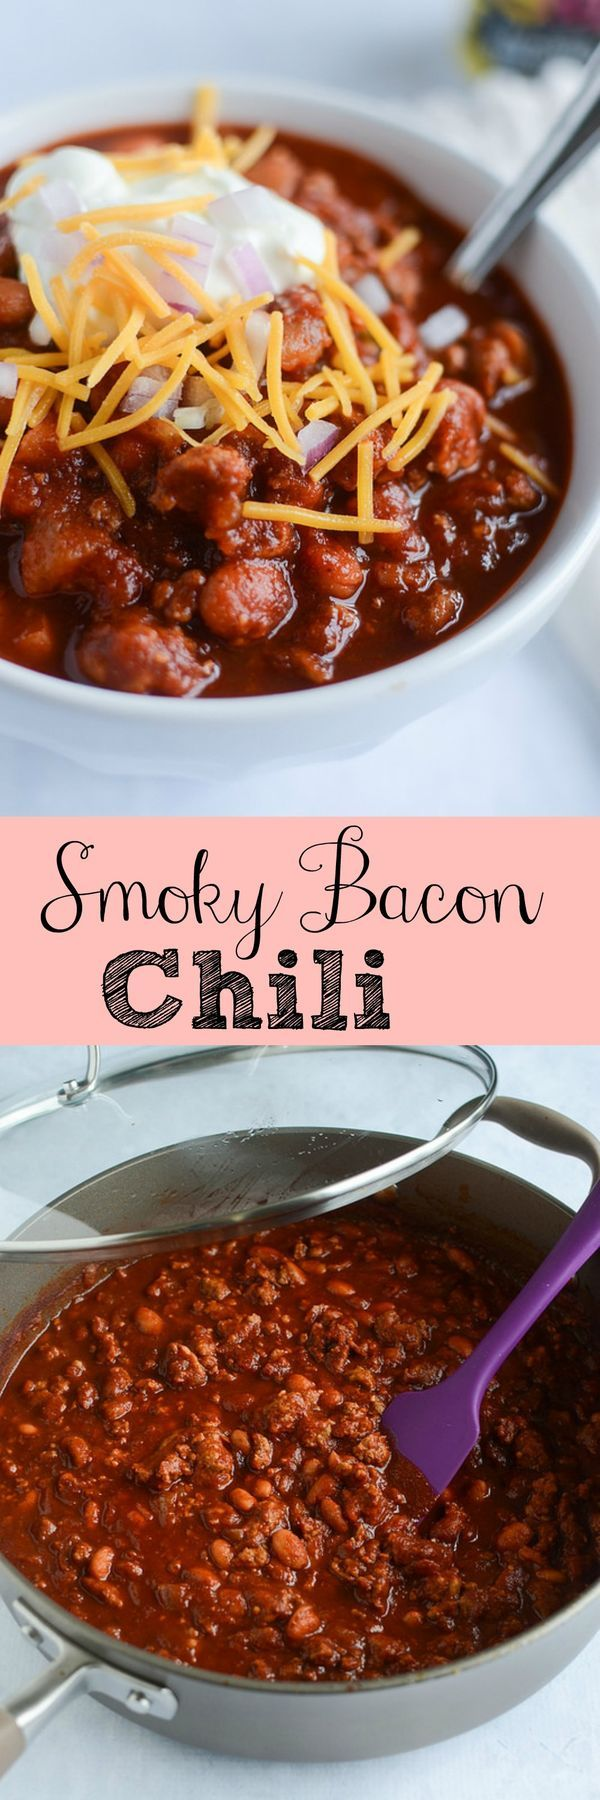 Smoky Bacon Chili - bacon makes everything better! This hearty and delicious recipe is going to become your winter favorite!